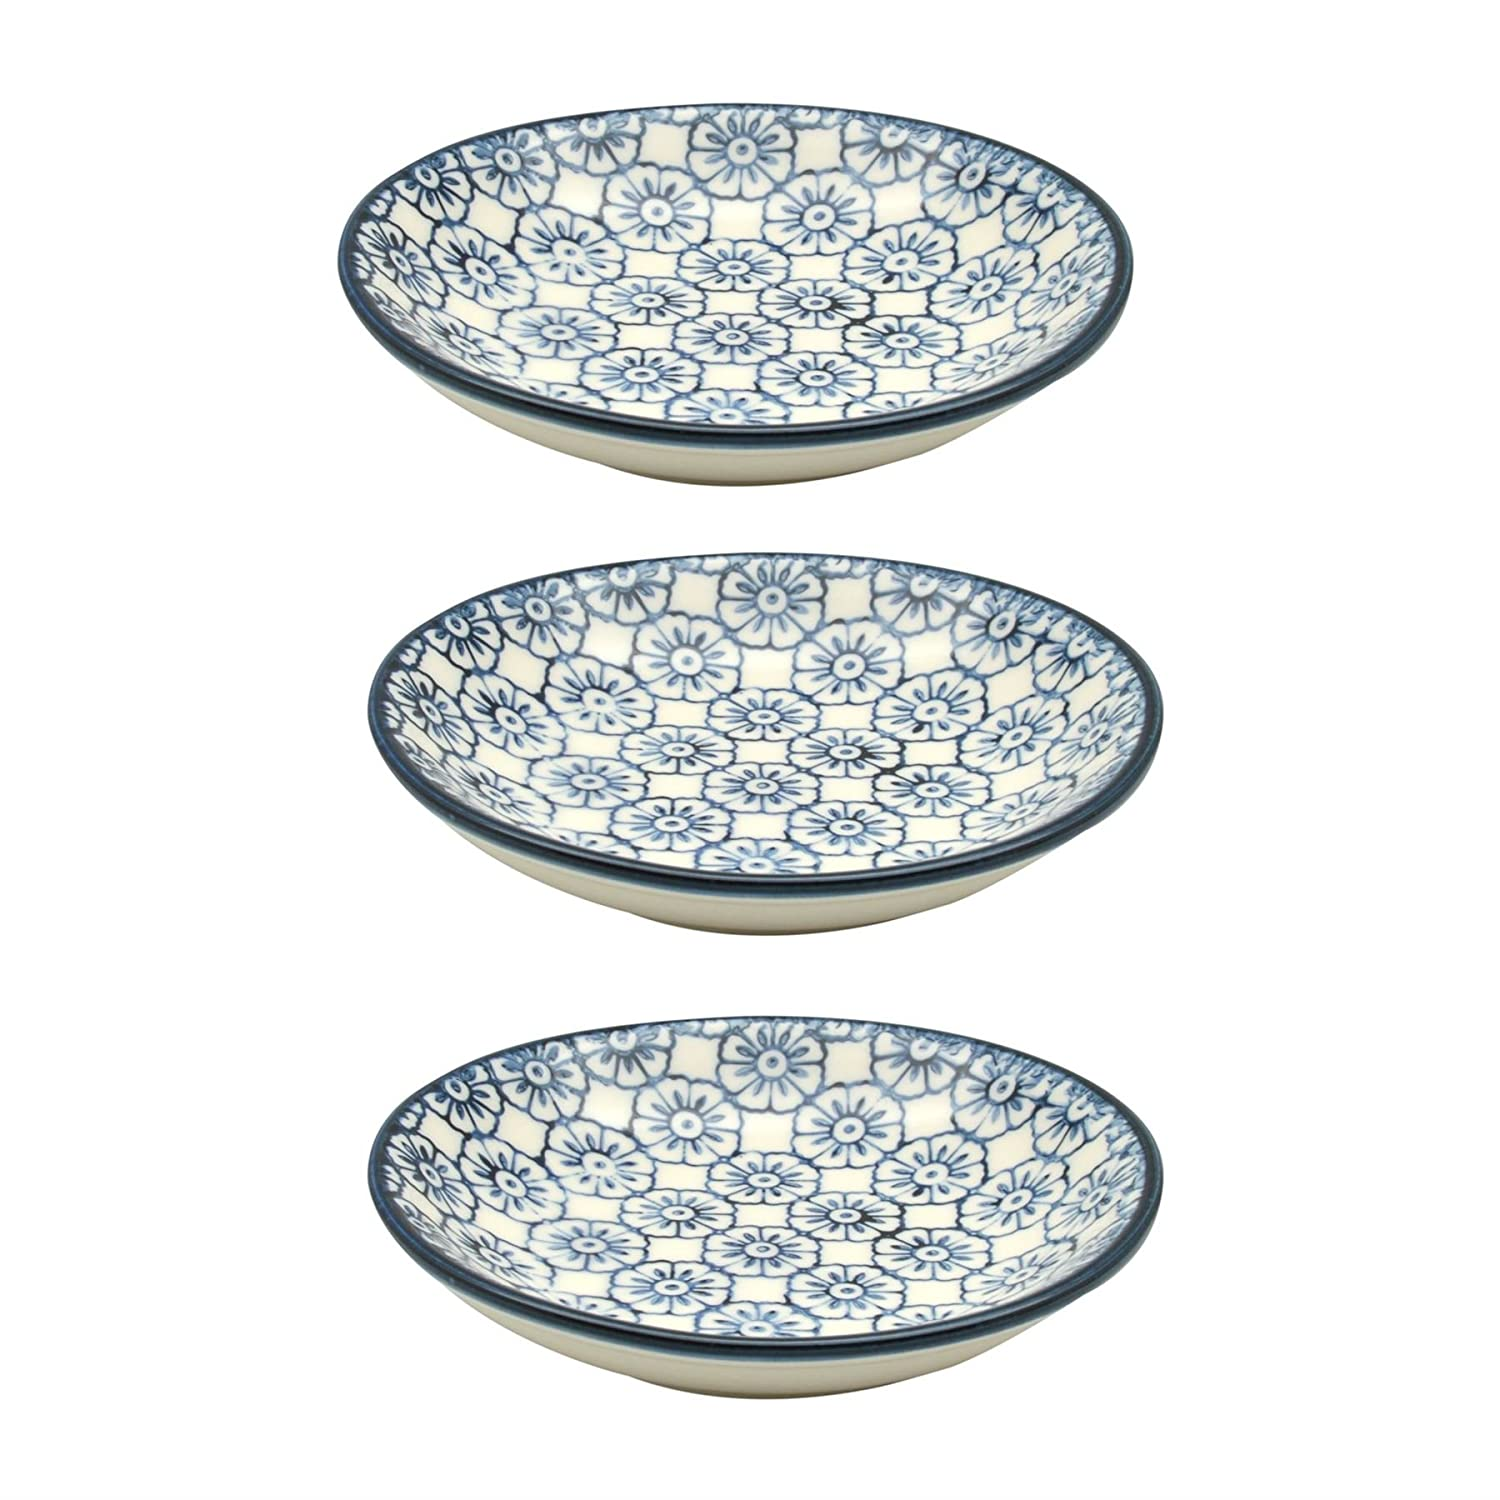 Small Patterned Rice / Soy Sauce / Olive Oil / Dipping Dish - 101mm - Blue Flower - Box of 3 Nicola Spring